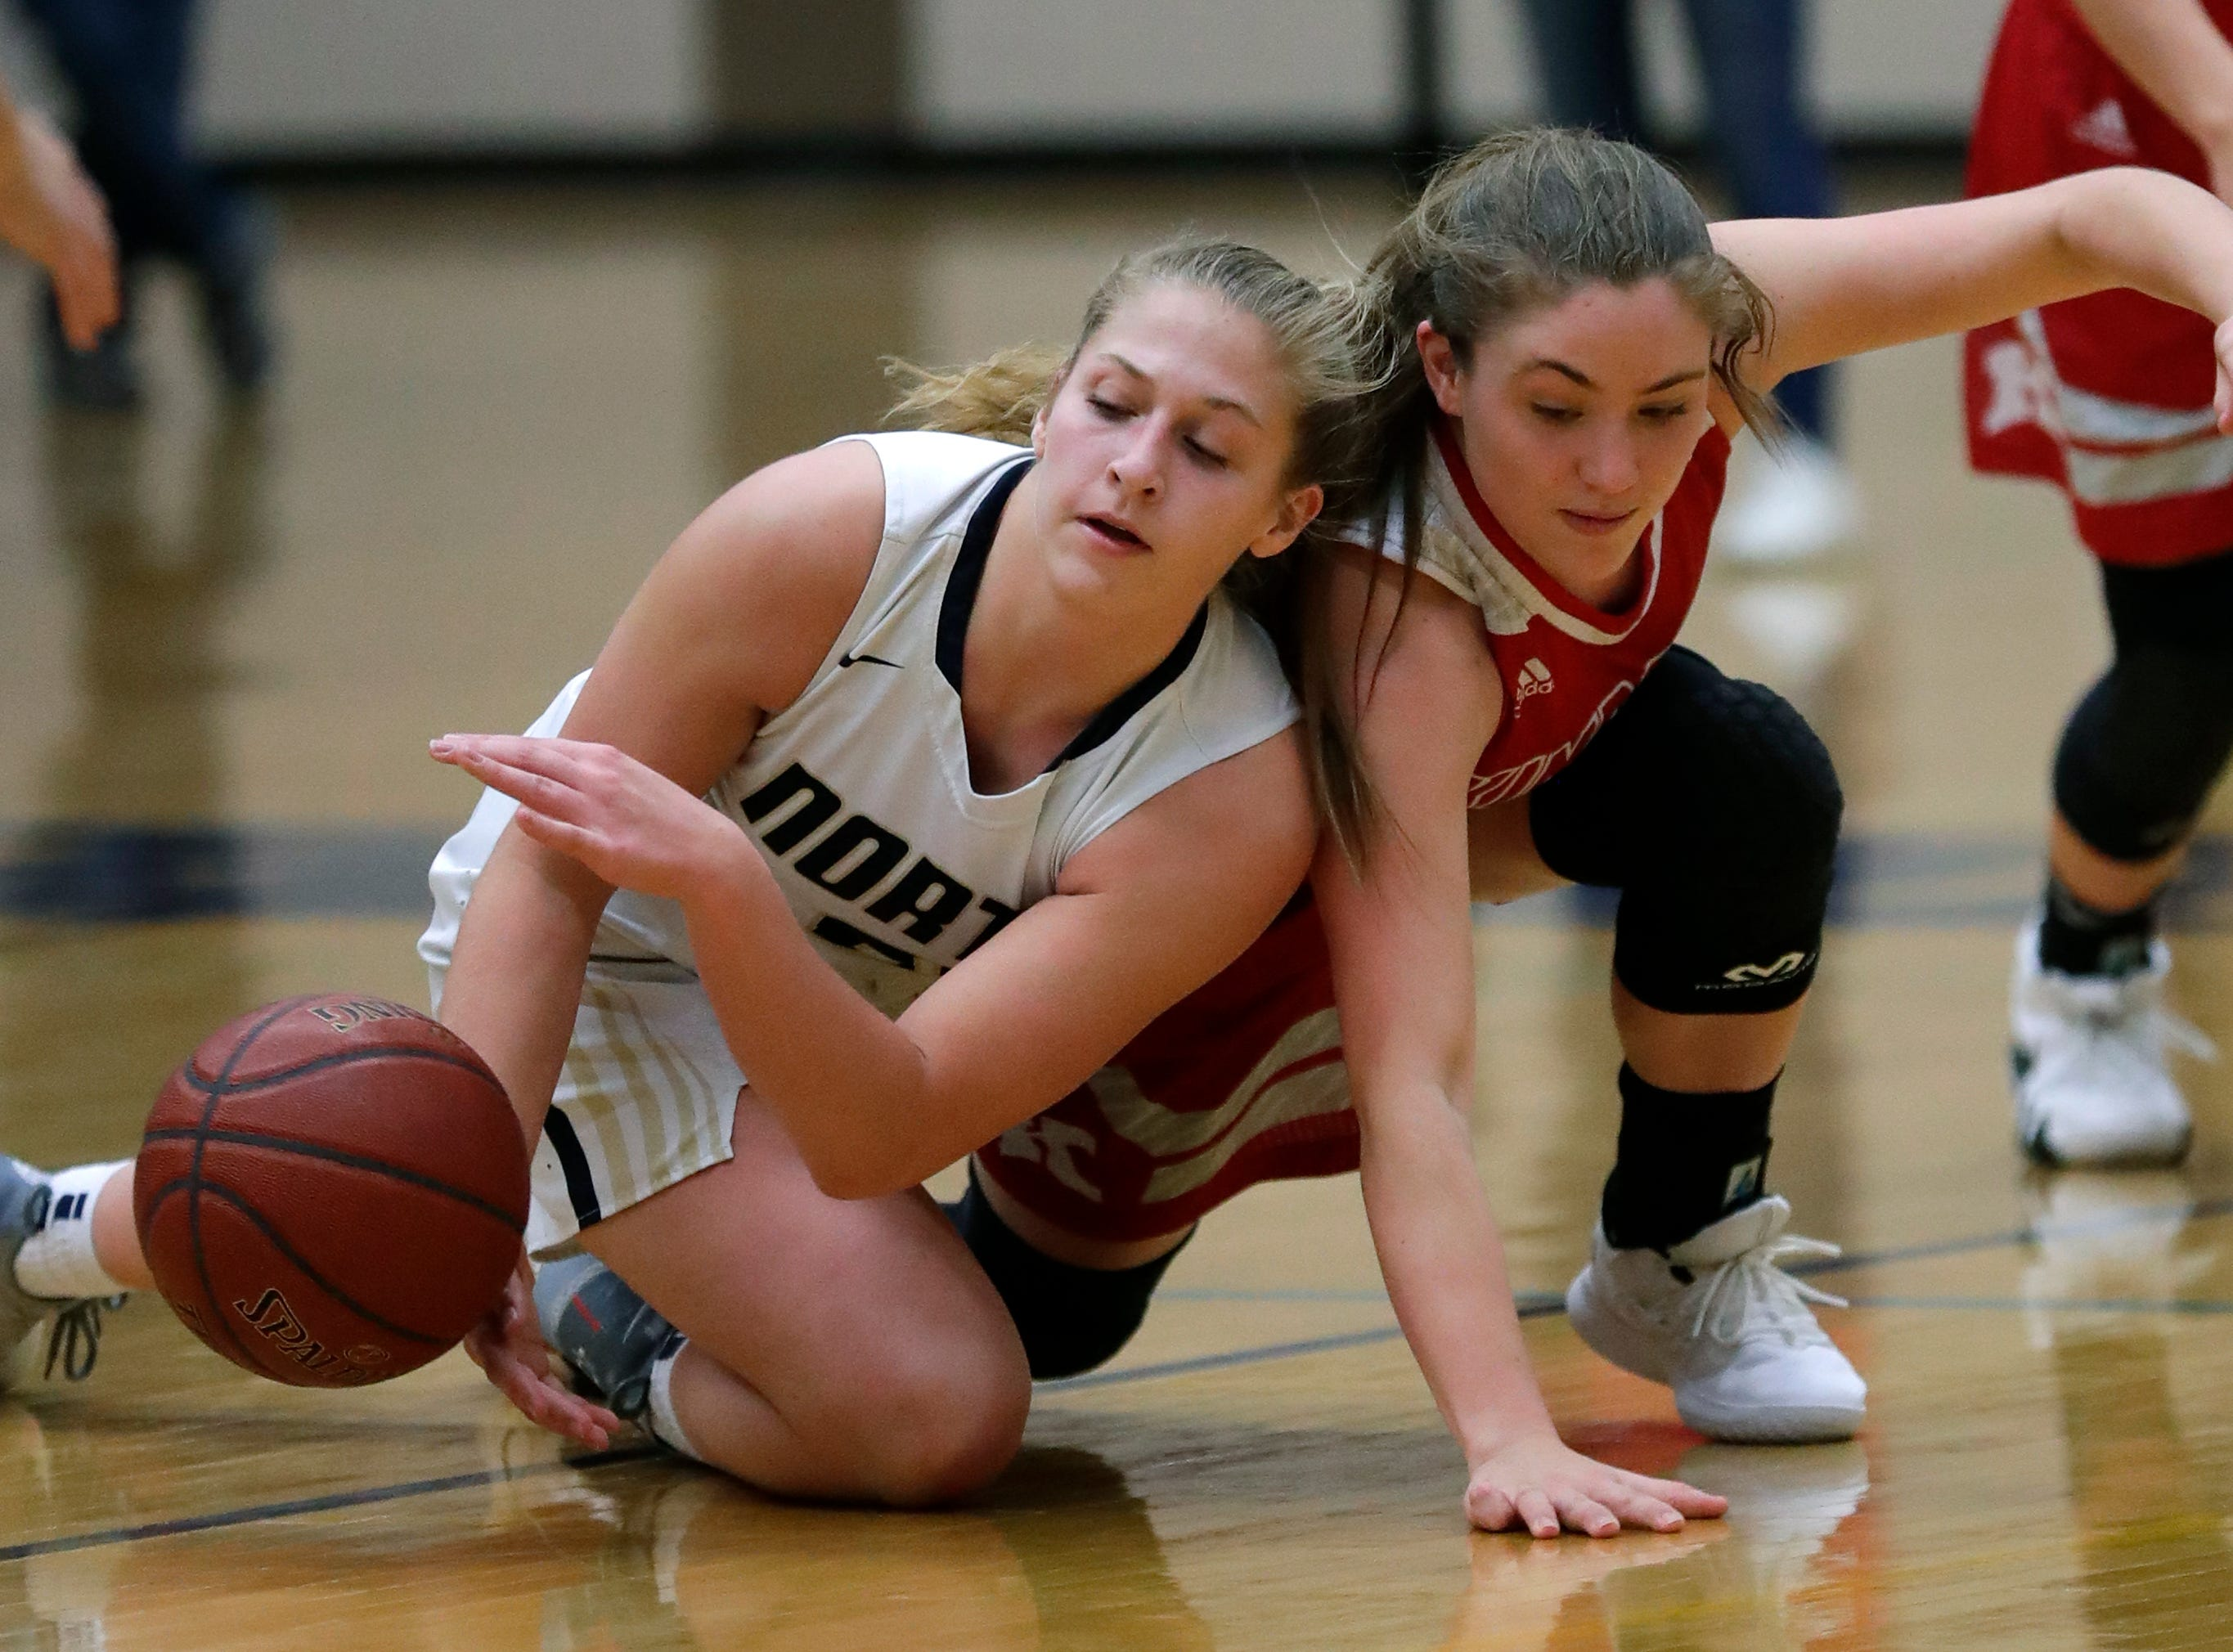 Appleton North High School's Lilli Van Handel (21) scrambles for the ball against Kimberly High School's Kate Karch (21) during their girls basketball game Tuesday, January 8, 2019, in Appleton, Wis. 